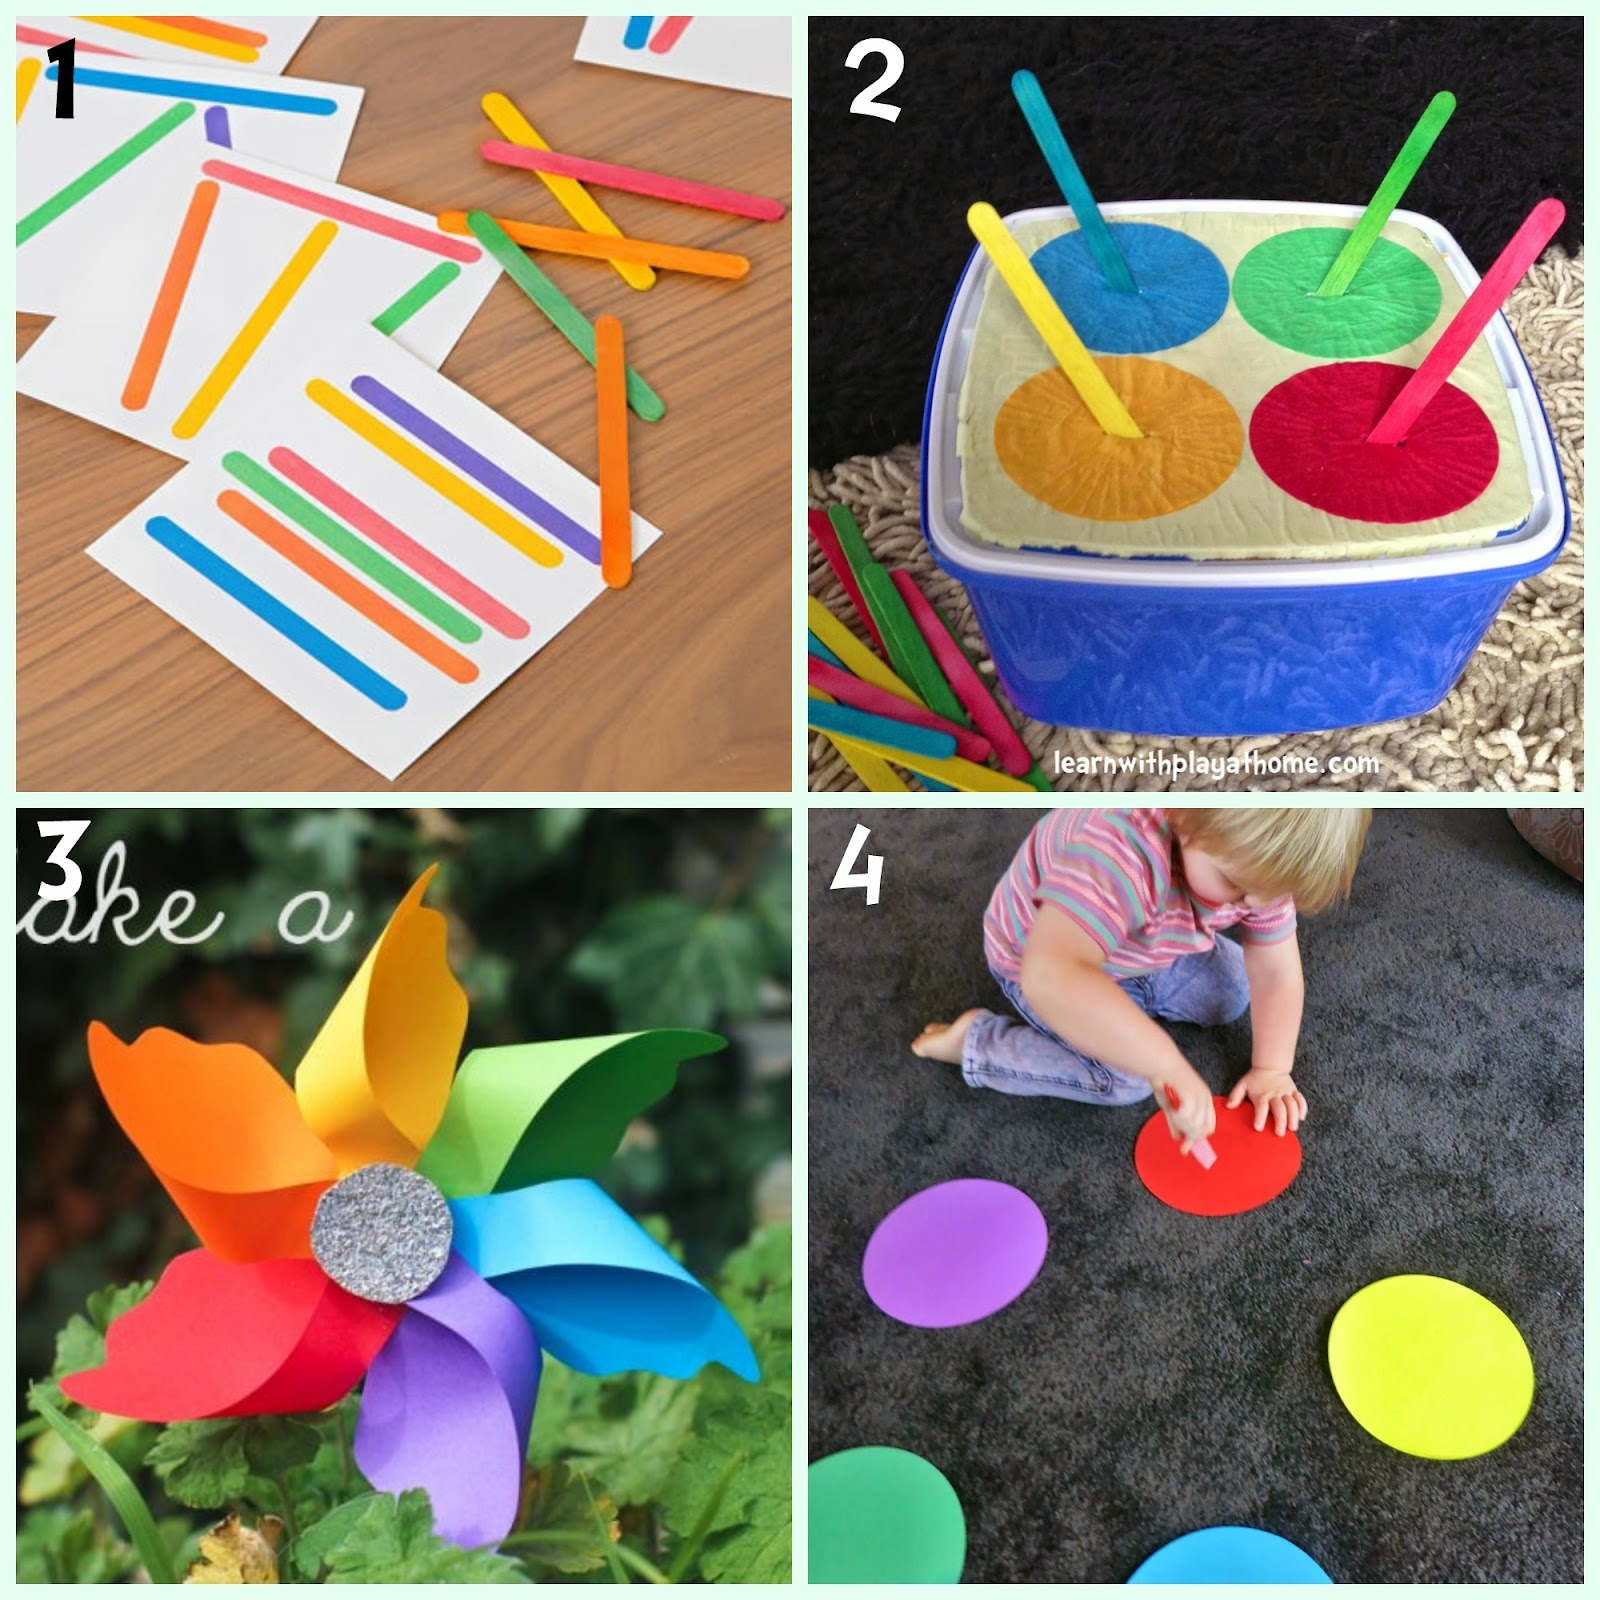 Learn With Play At Home 8 Colour Learning Activities For Kids